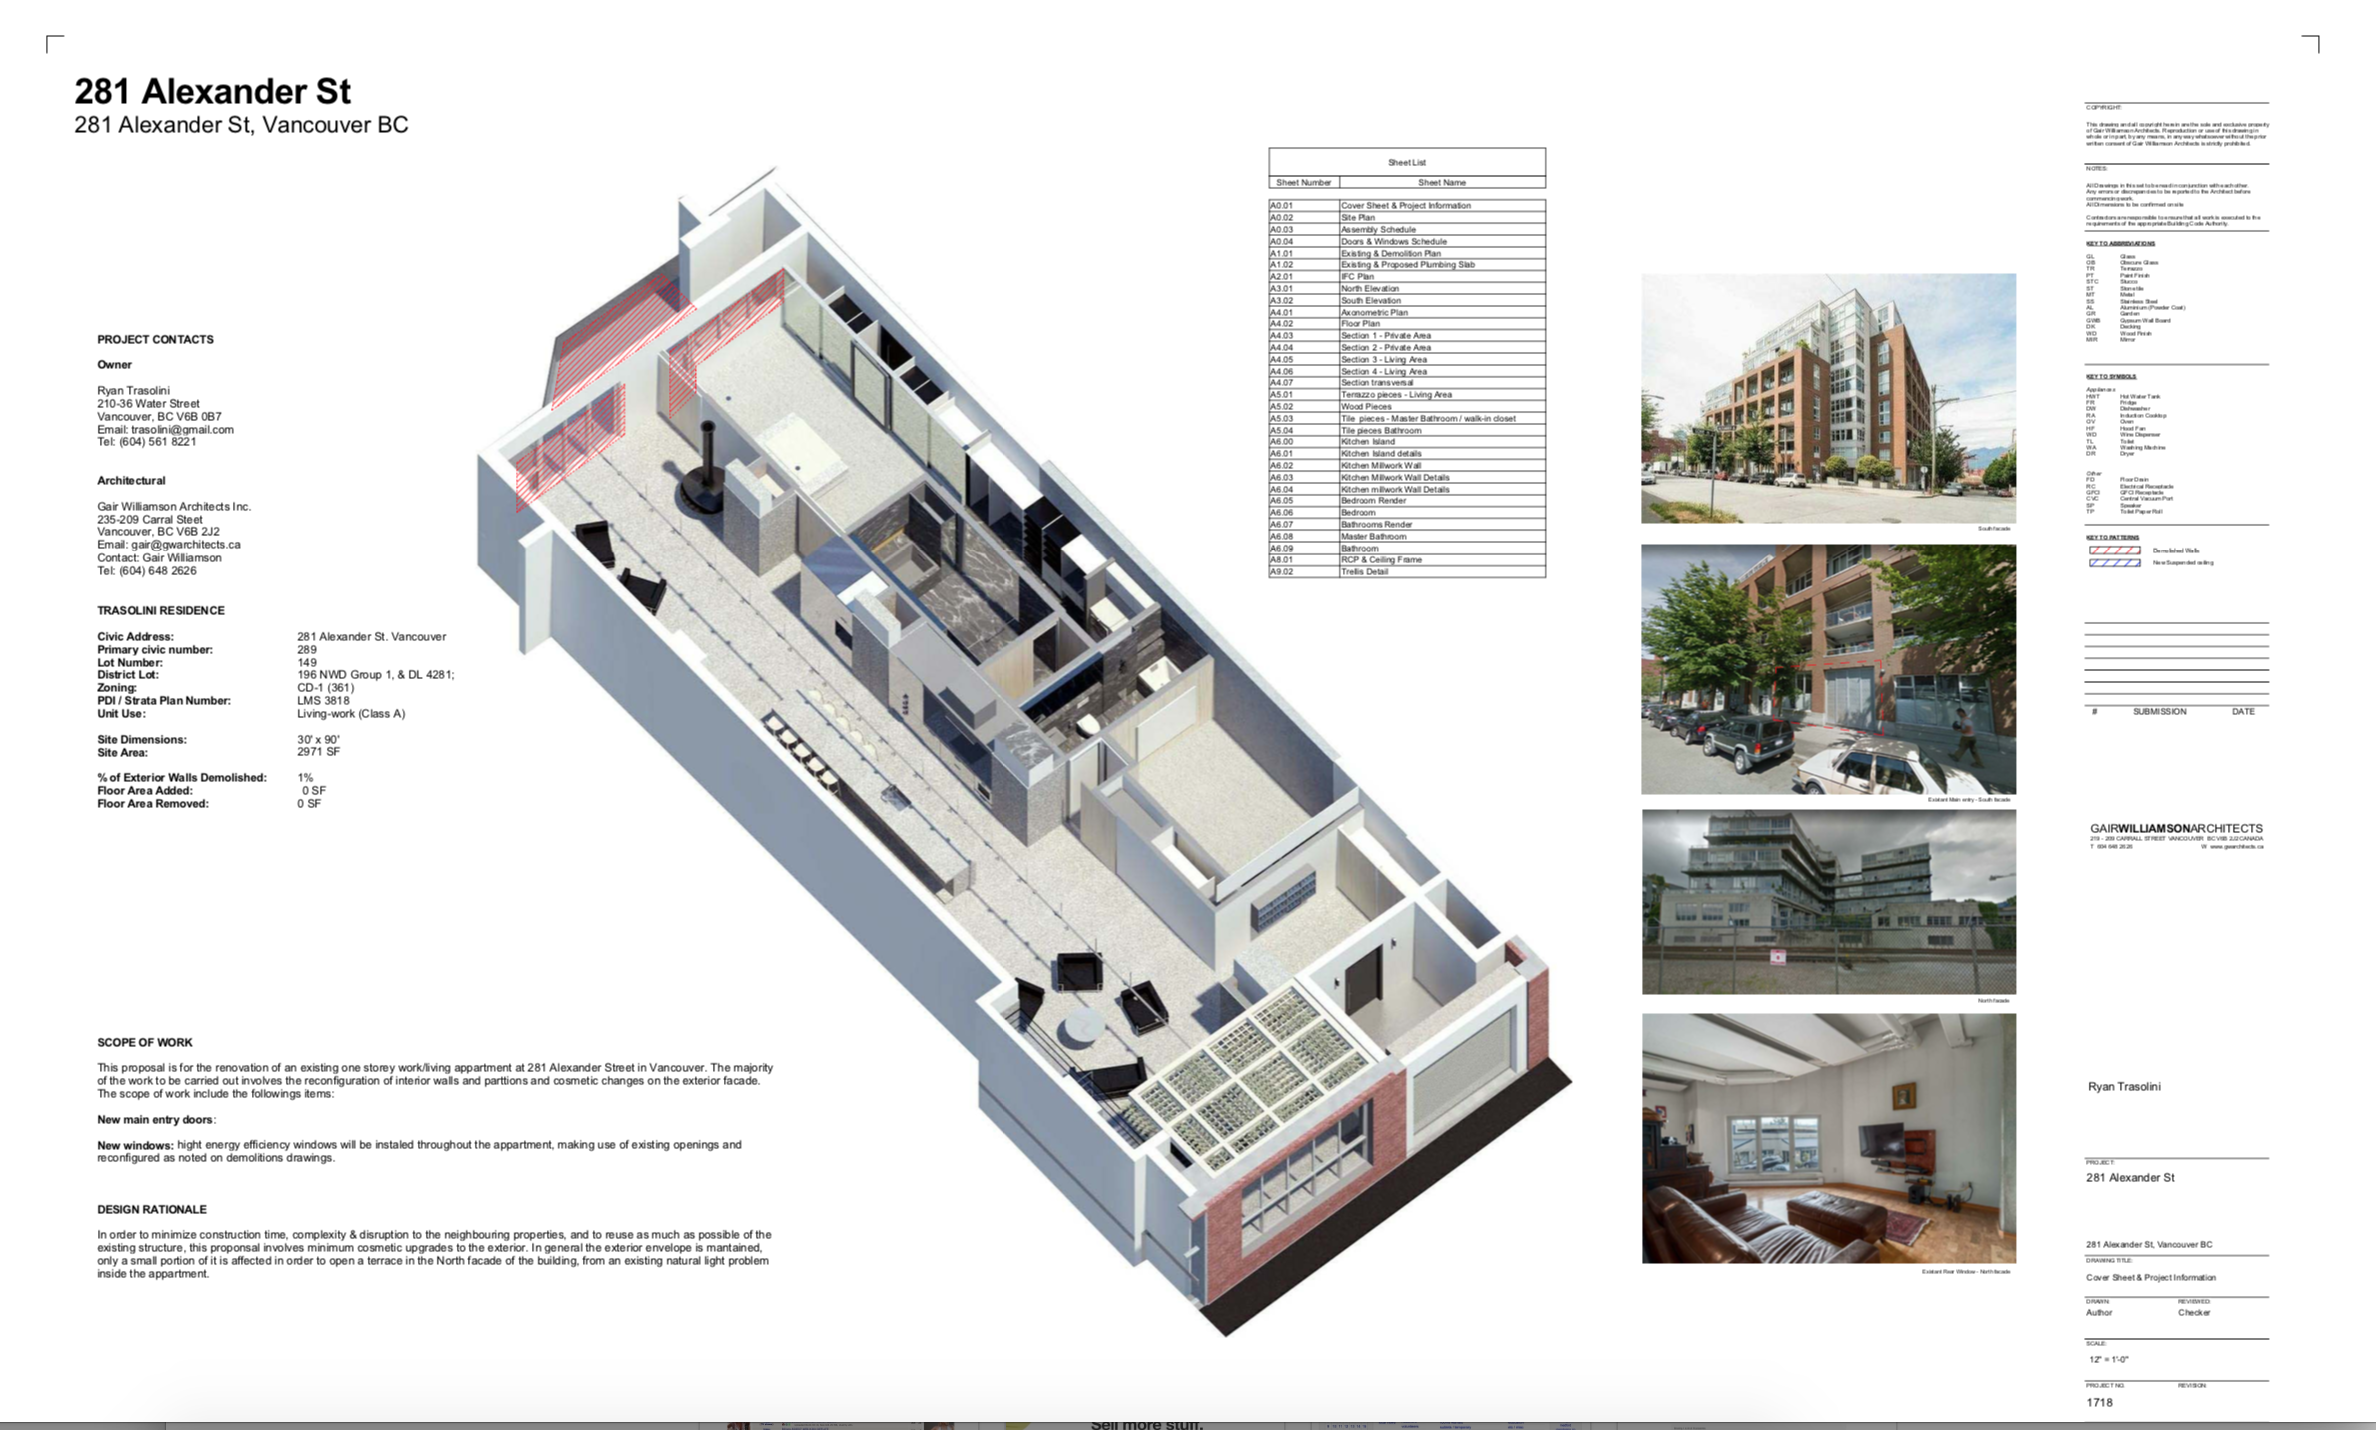 Plans & renderings from GW Architects - contact Realtor for more details